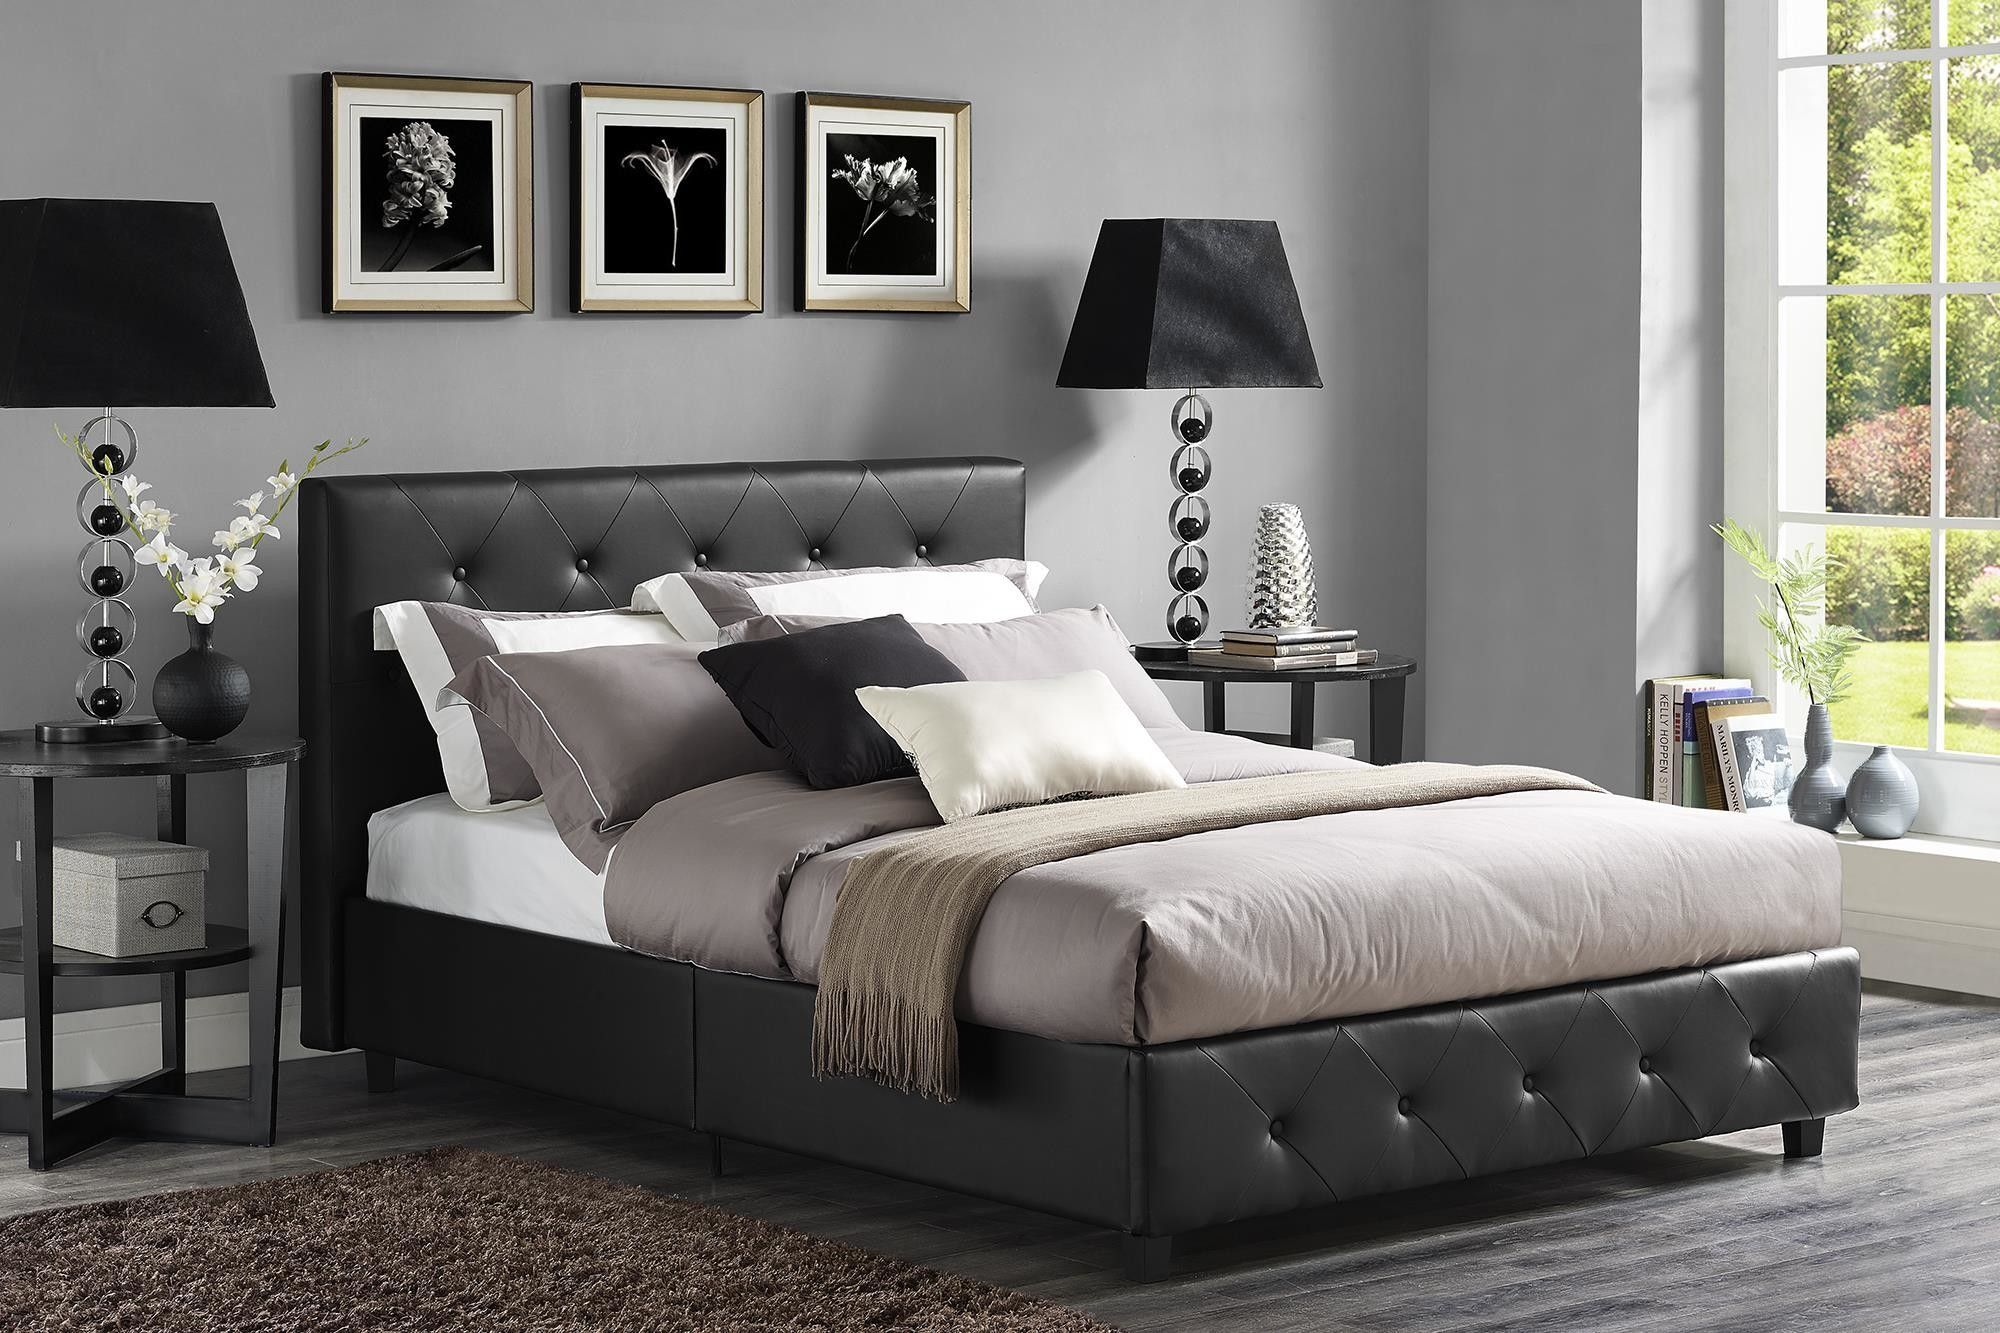 Claudius Upholstered Bed | Bedroom ideas | Pinterest | Decoración